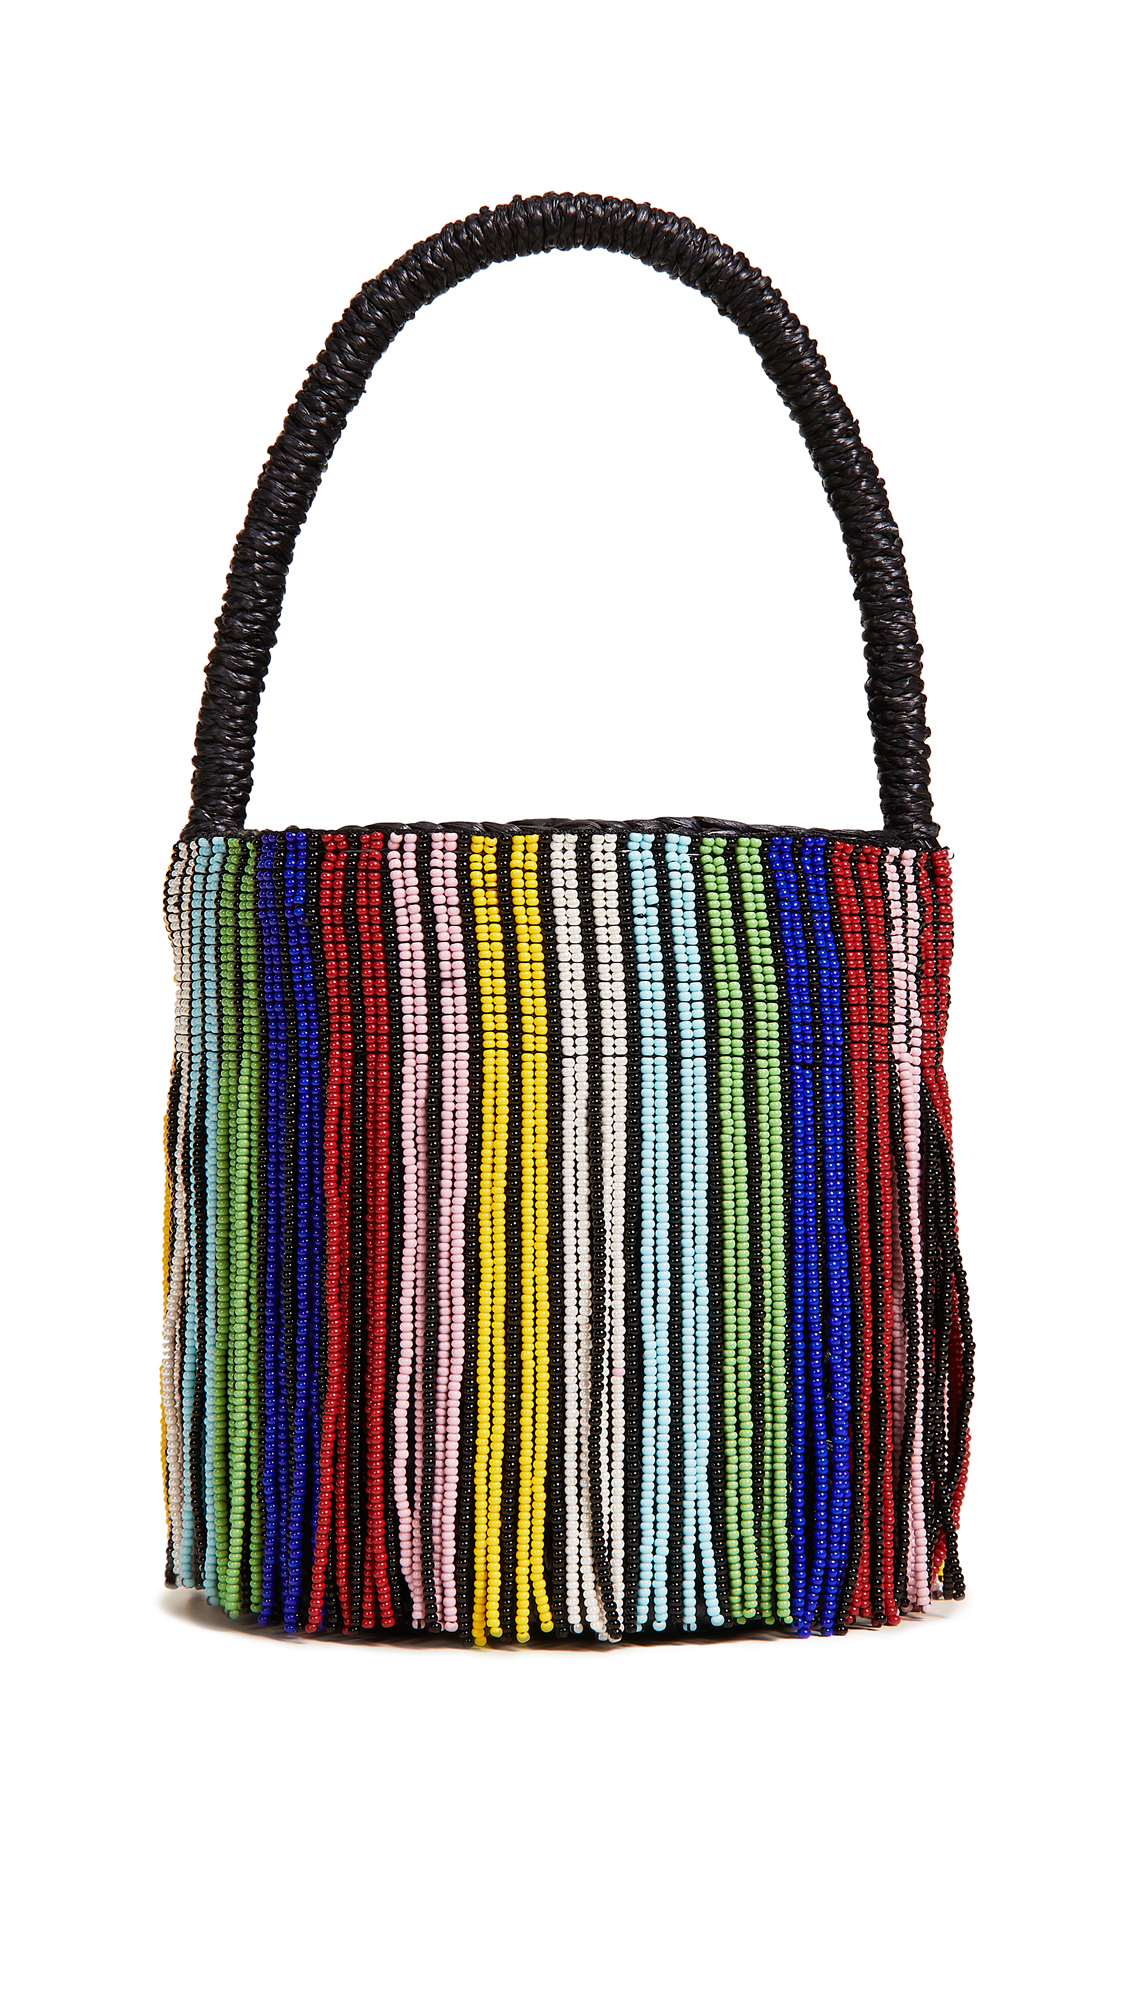 MINI MINI BEADED BUCKET BAG